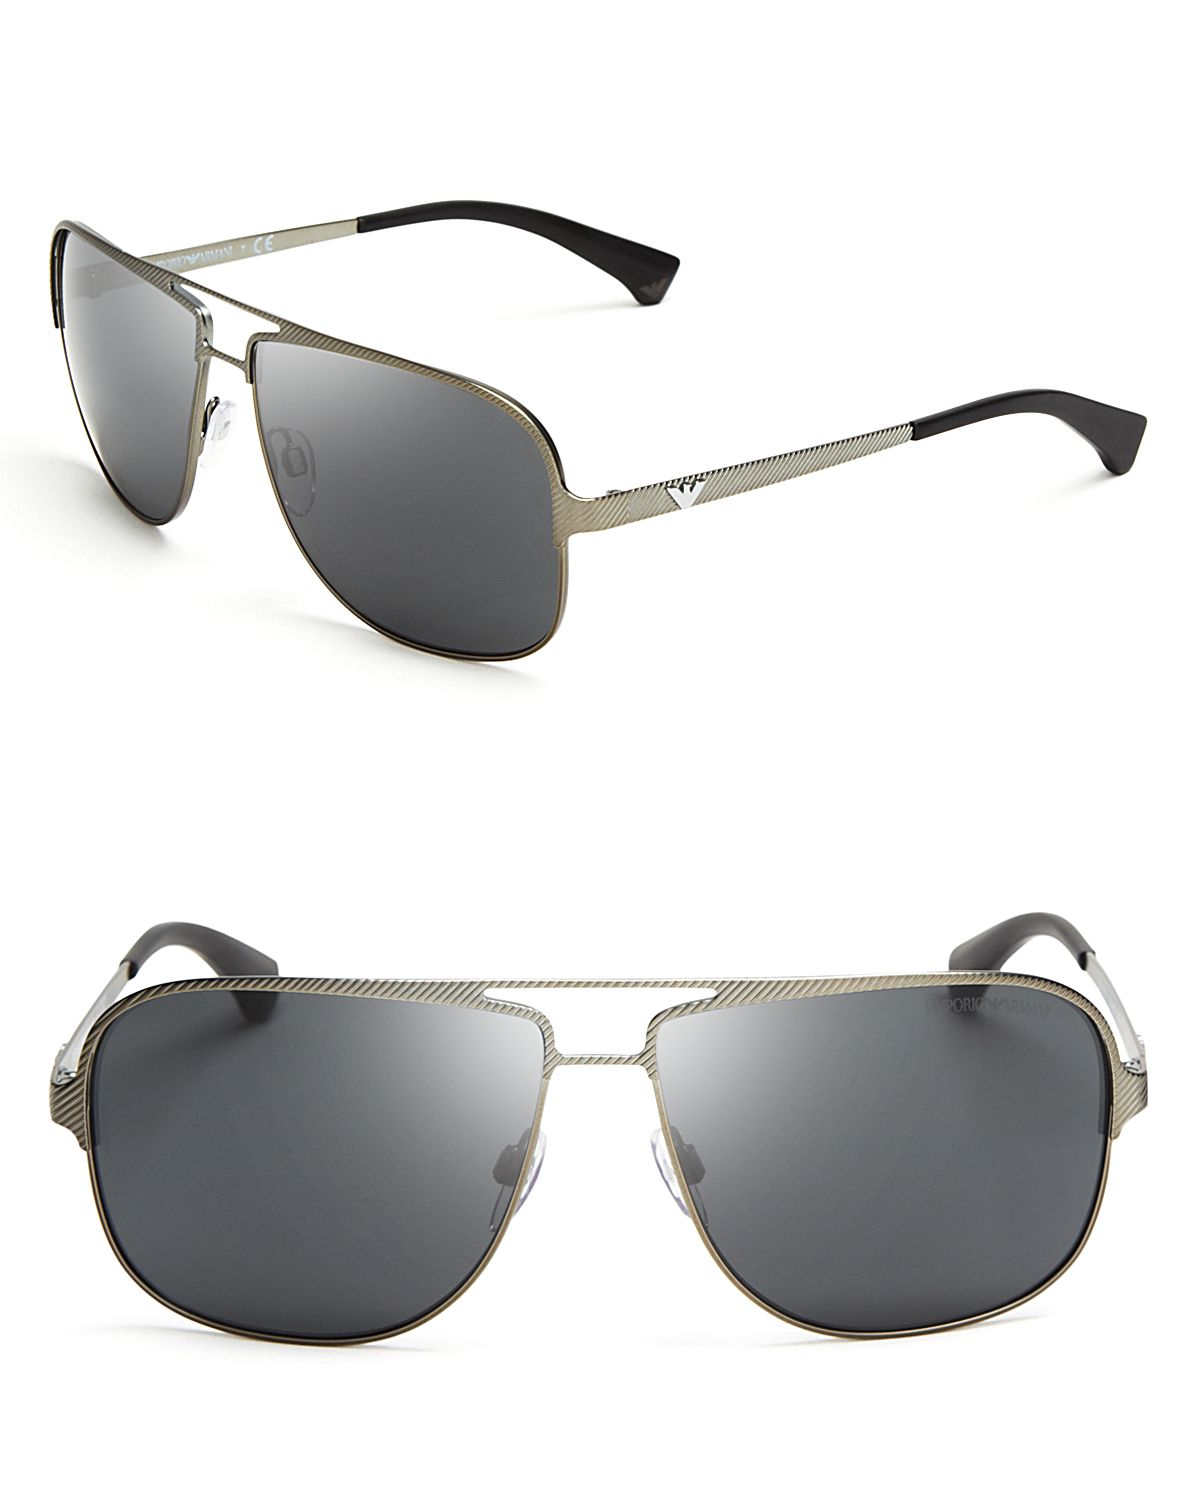 79d95eae18ba Lyst - Emporio Armani Large Square Navigator Sunglasses in Metallic ...